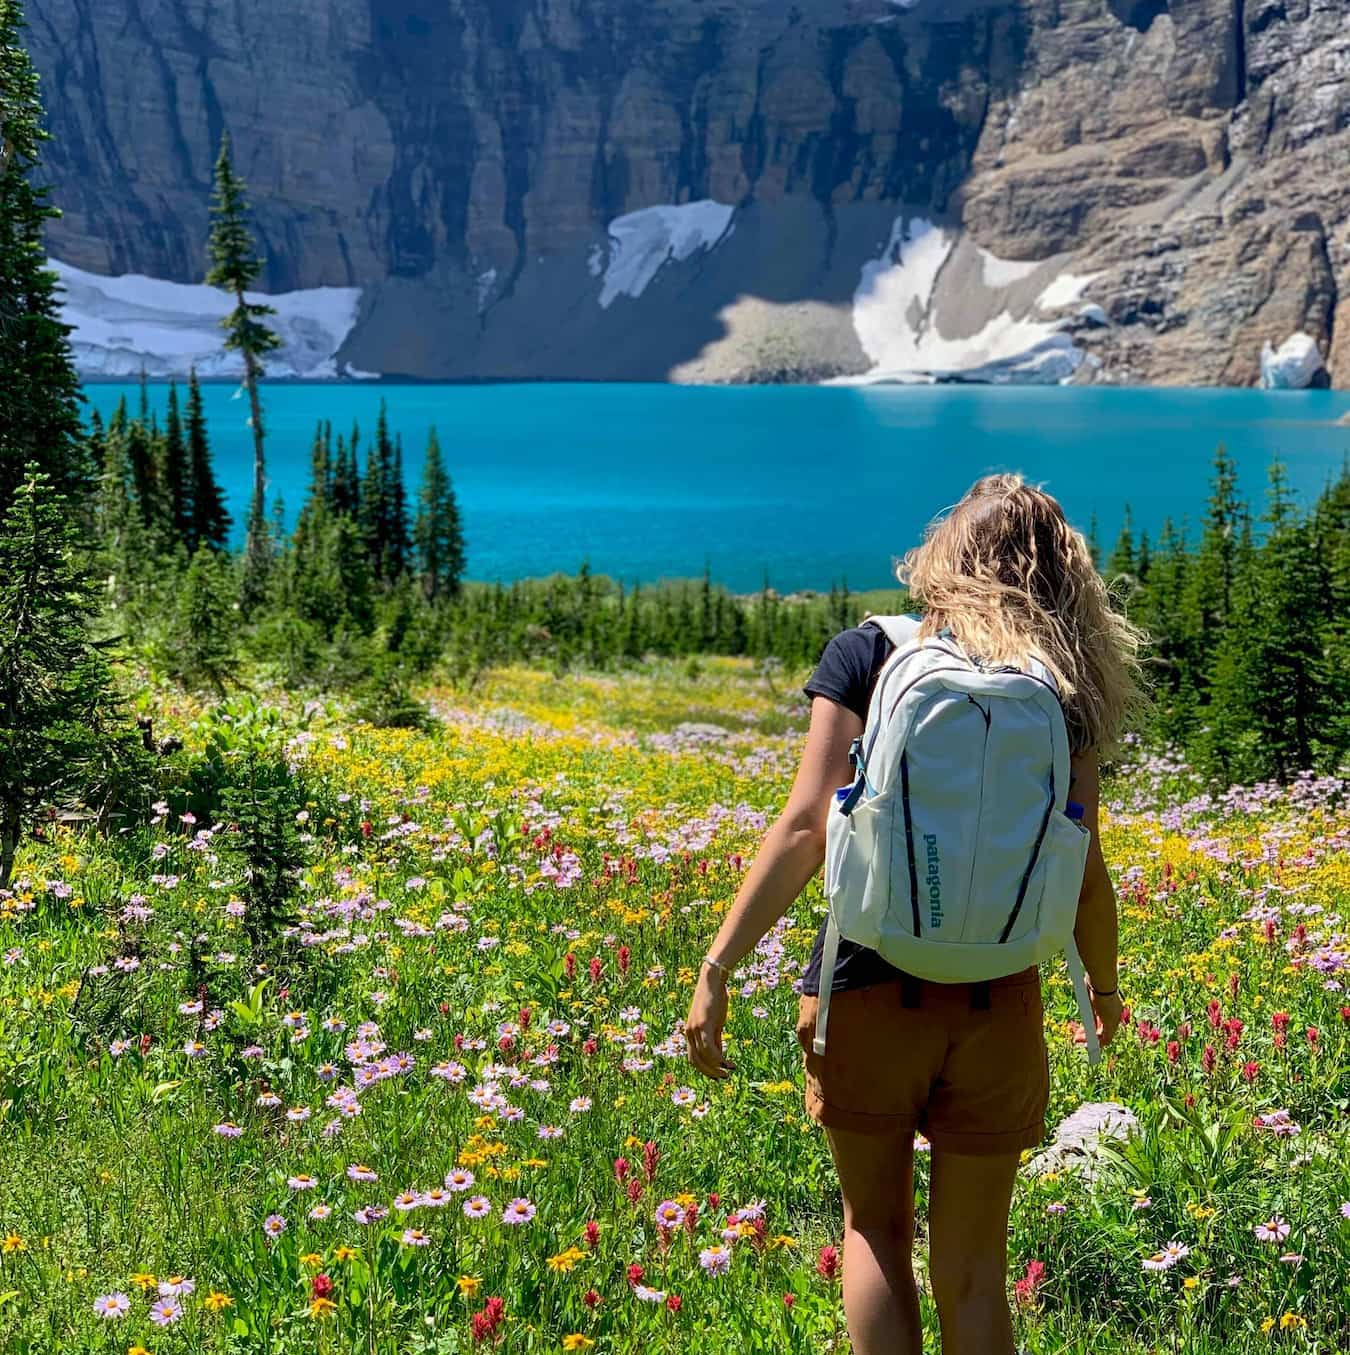 Women hiking in through wildflowers above an alpine lake in the mountains.